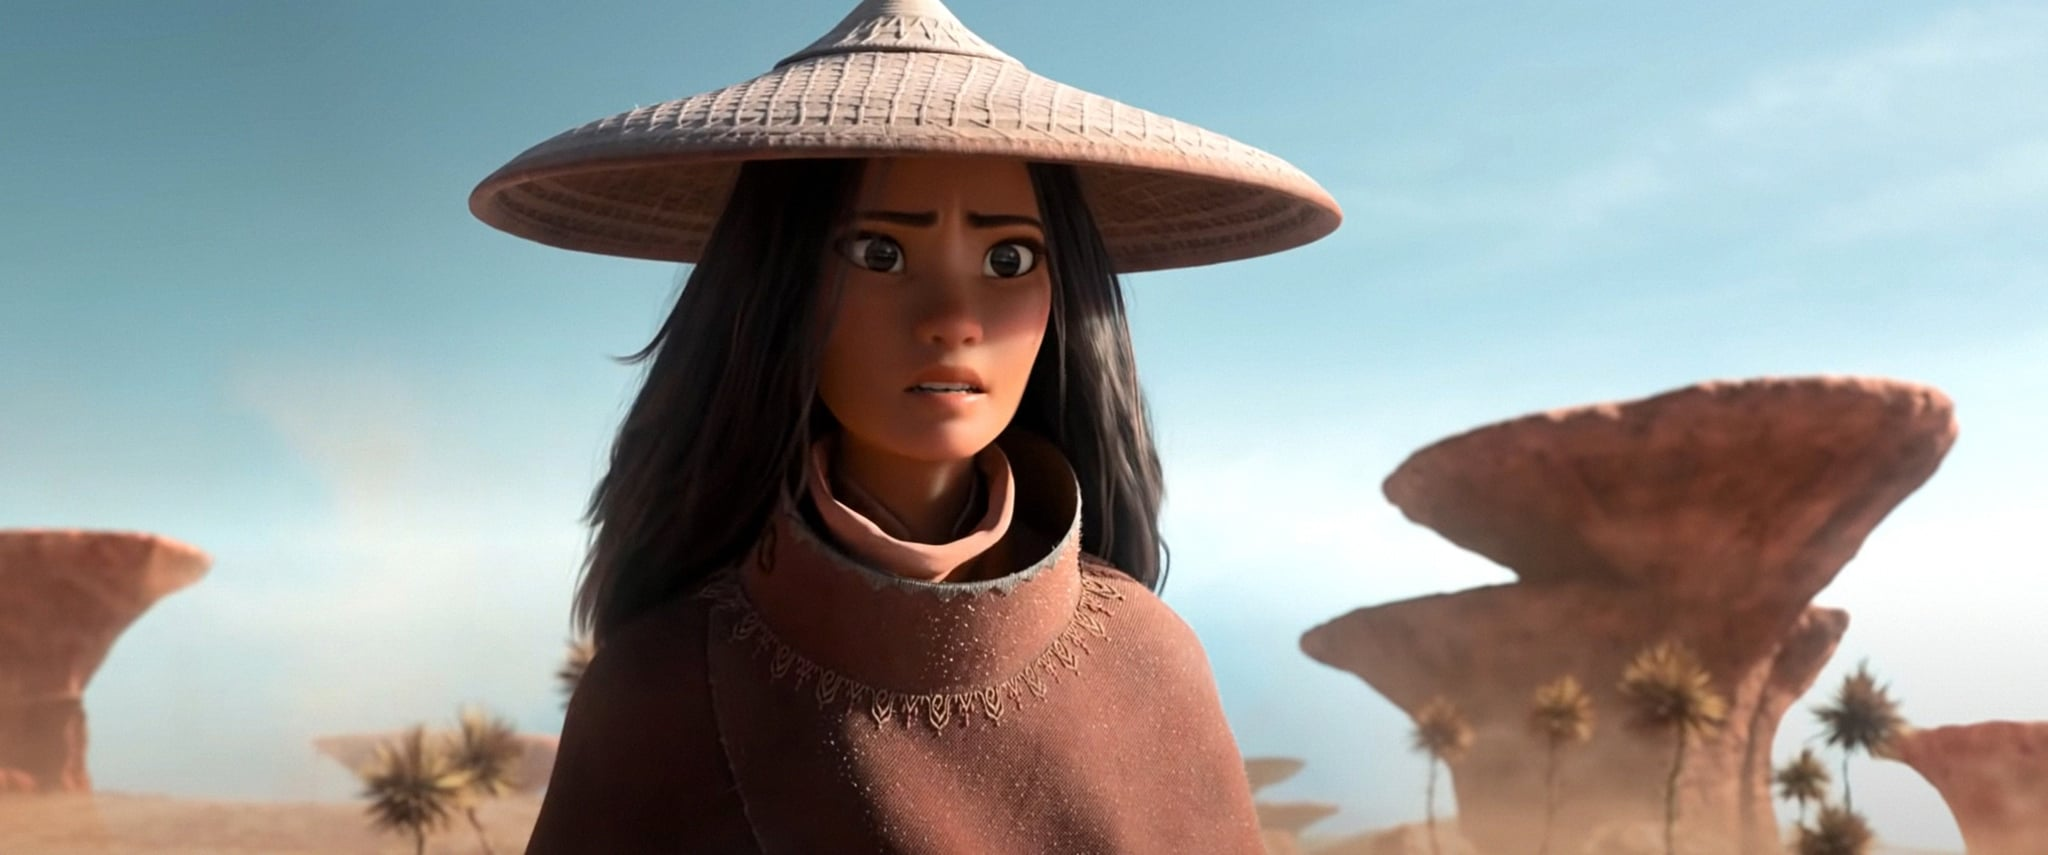 RAYA AND THE LAST DRAGON, Raya (voice: Kelly Marie Tran), 2021.  Walt Disney Studios Motion Pictures / Courtesy Everett Collection